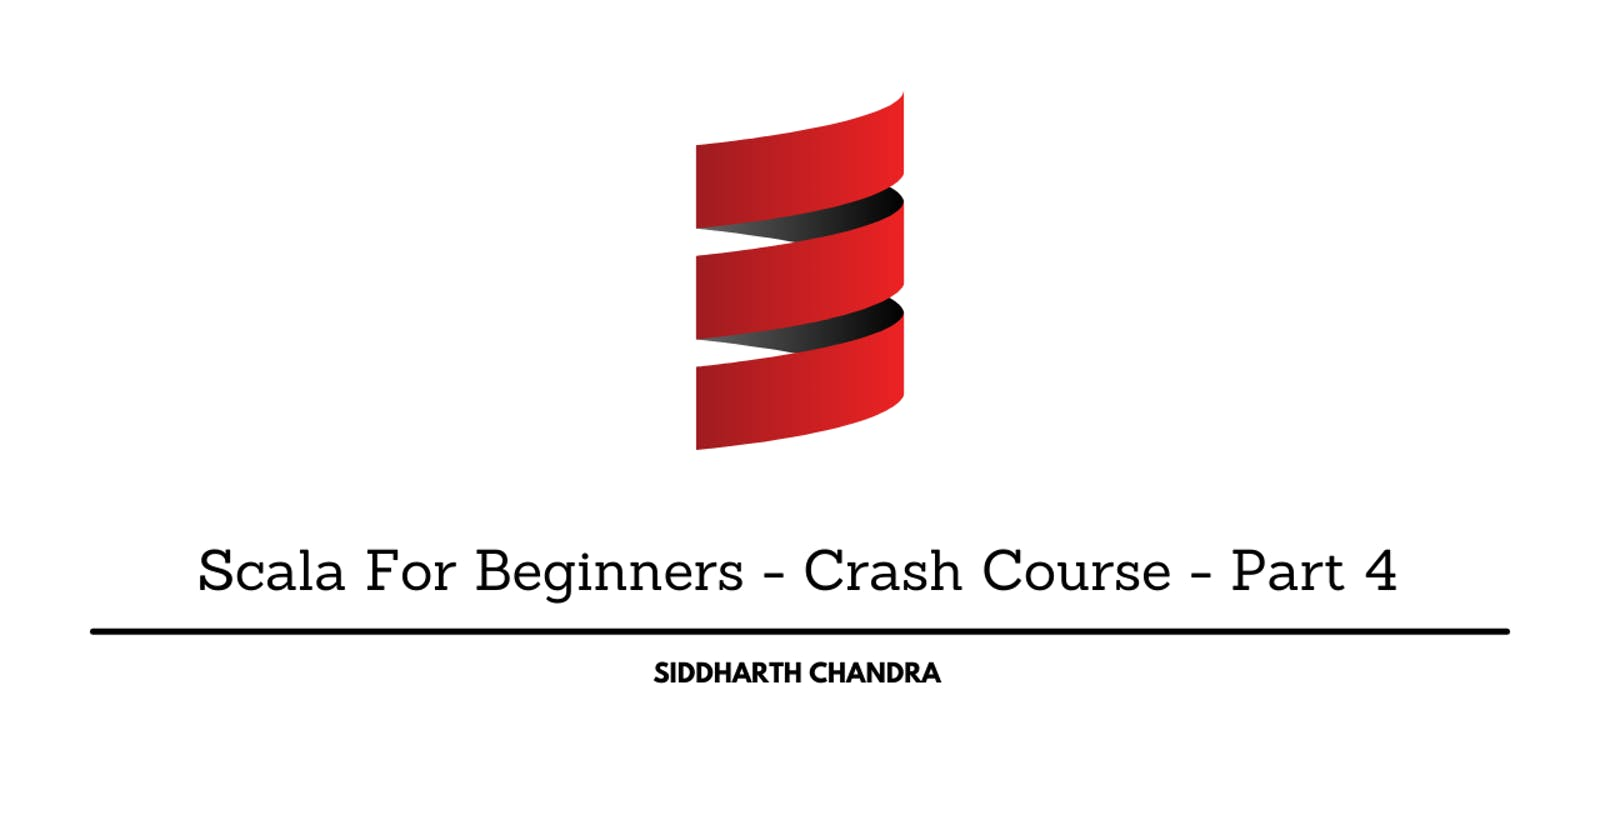 Scala For Beginners - Crash Course - Part 4